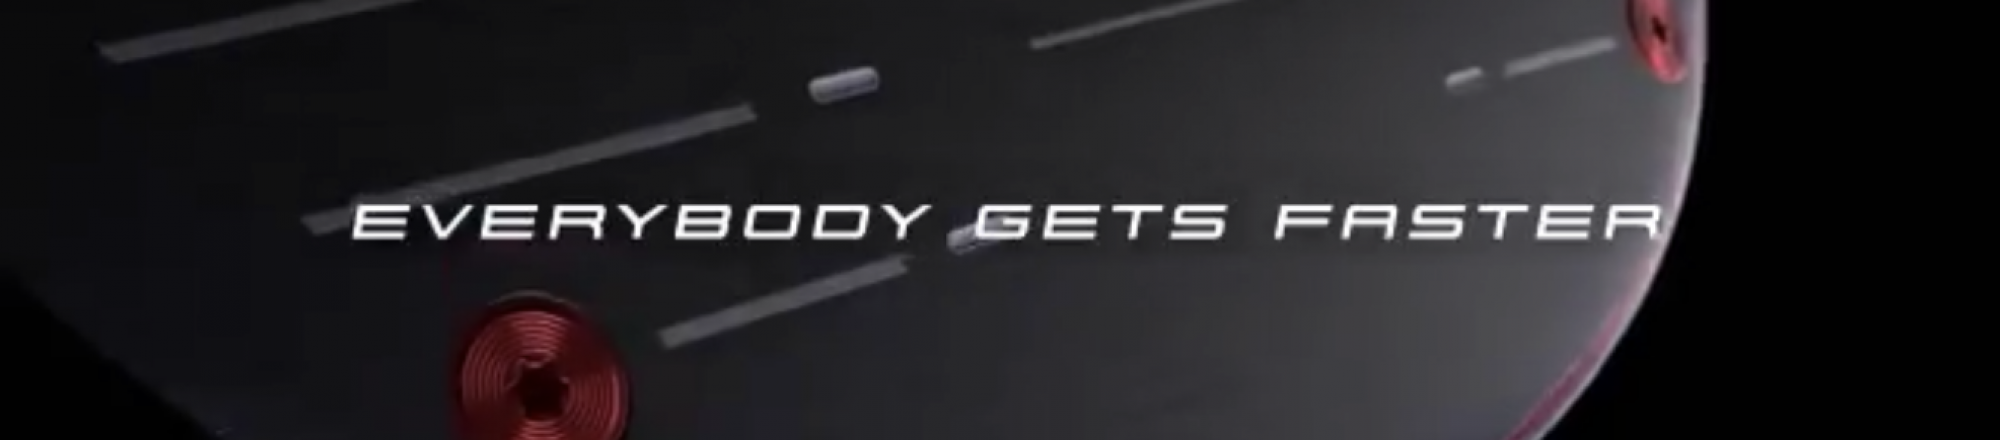 Callaway and TaylorMade tease new drivers